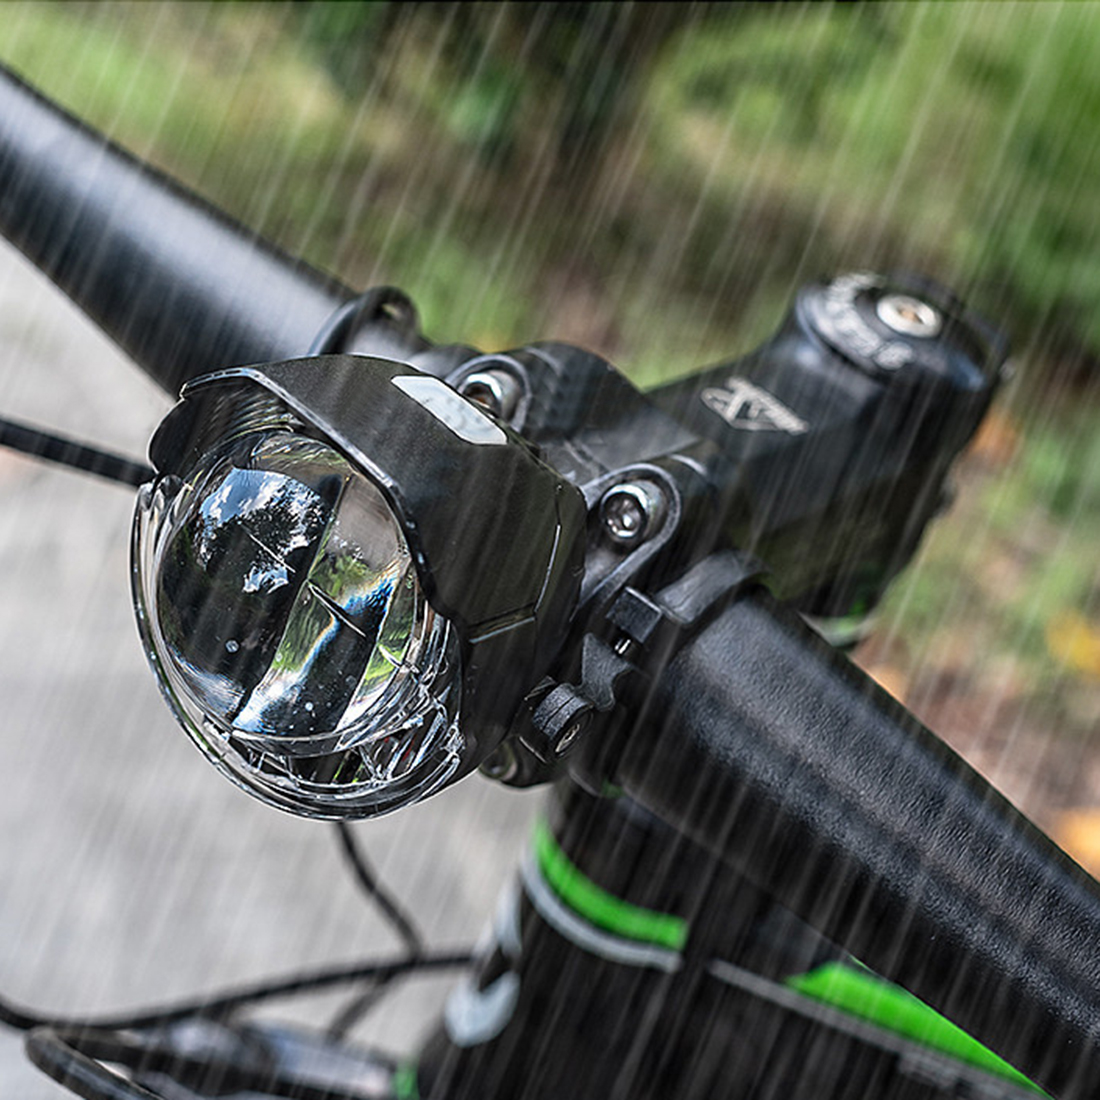 Details about  /Rechargeable Mountain Cycling Light Bicycle Bike T6 LED Headlight Rear Lamp